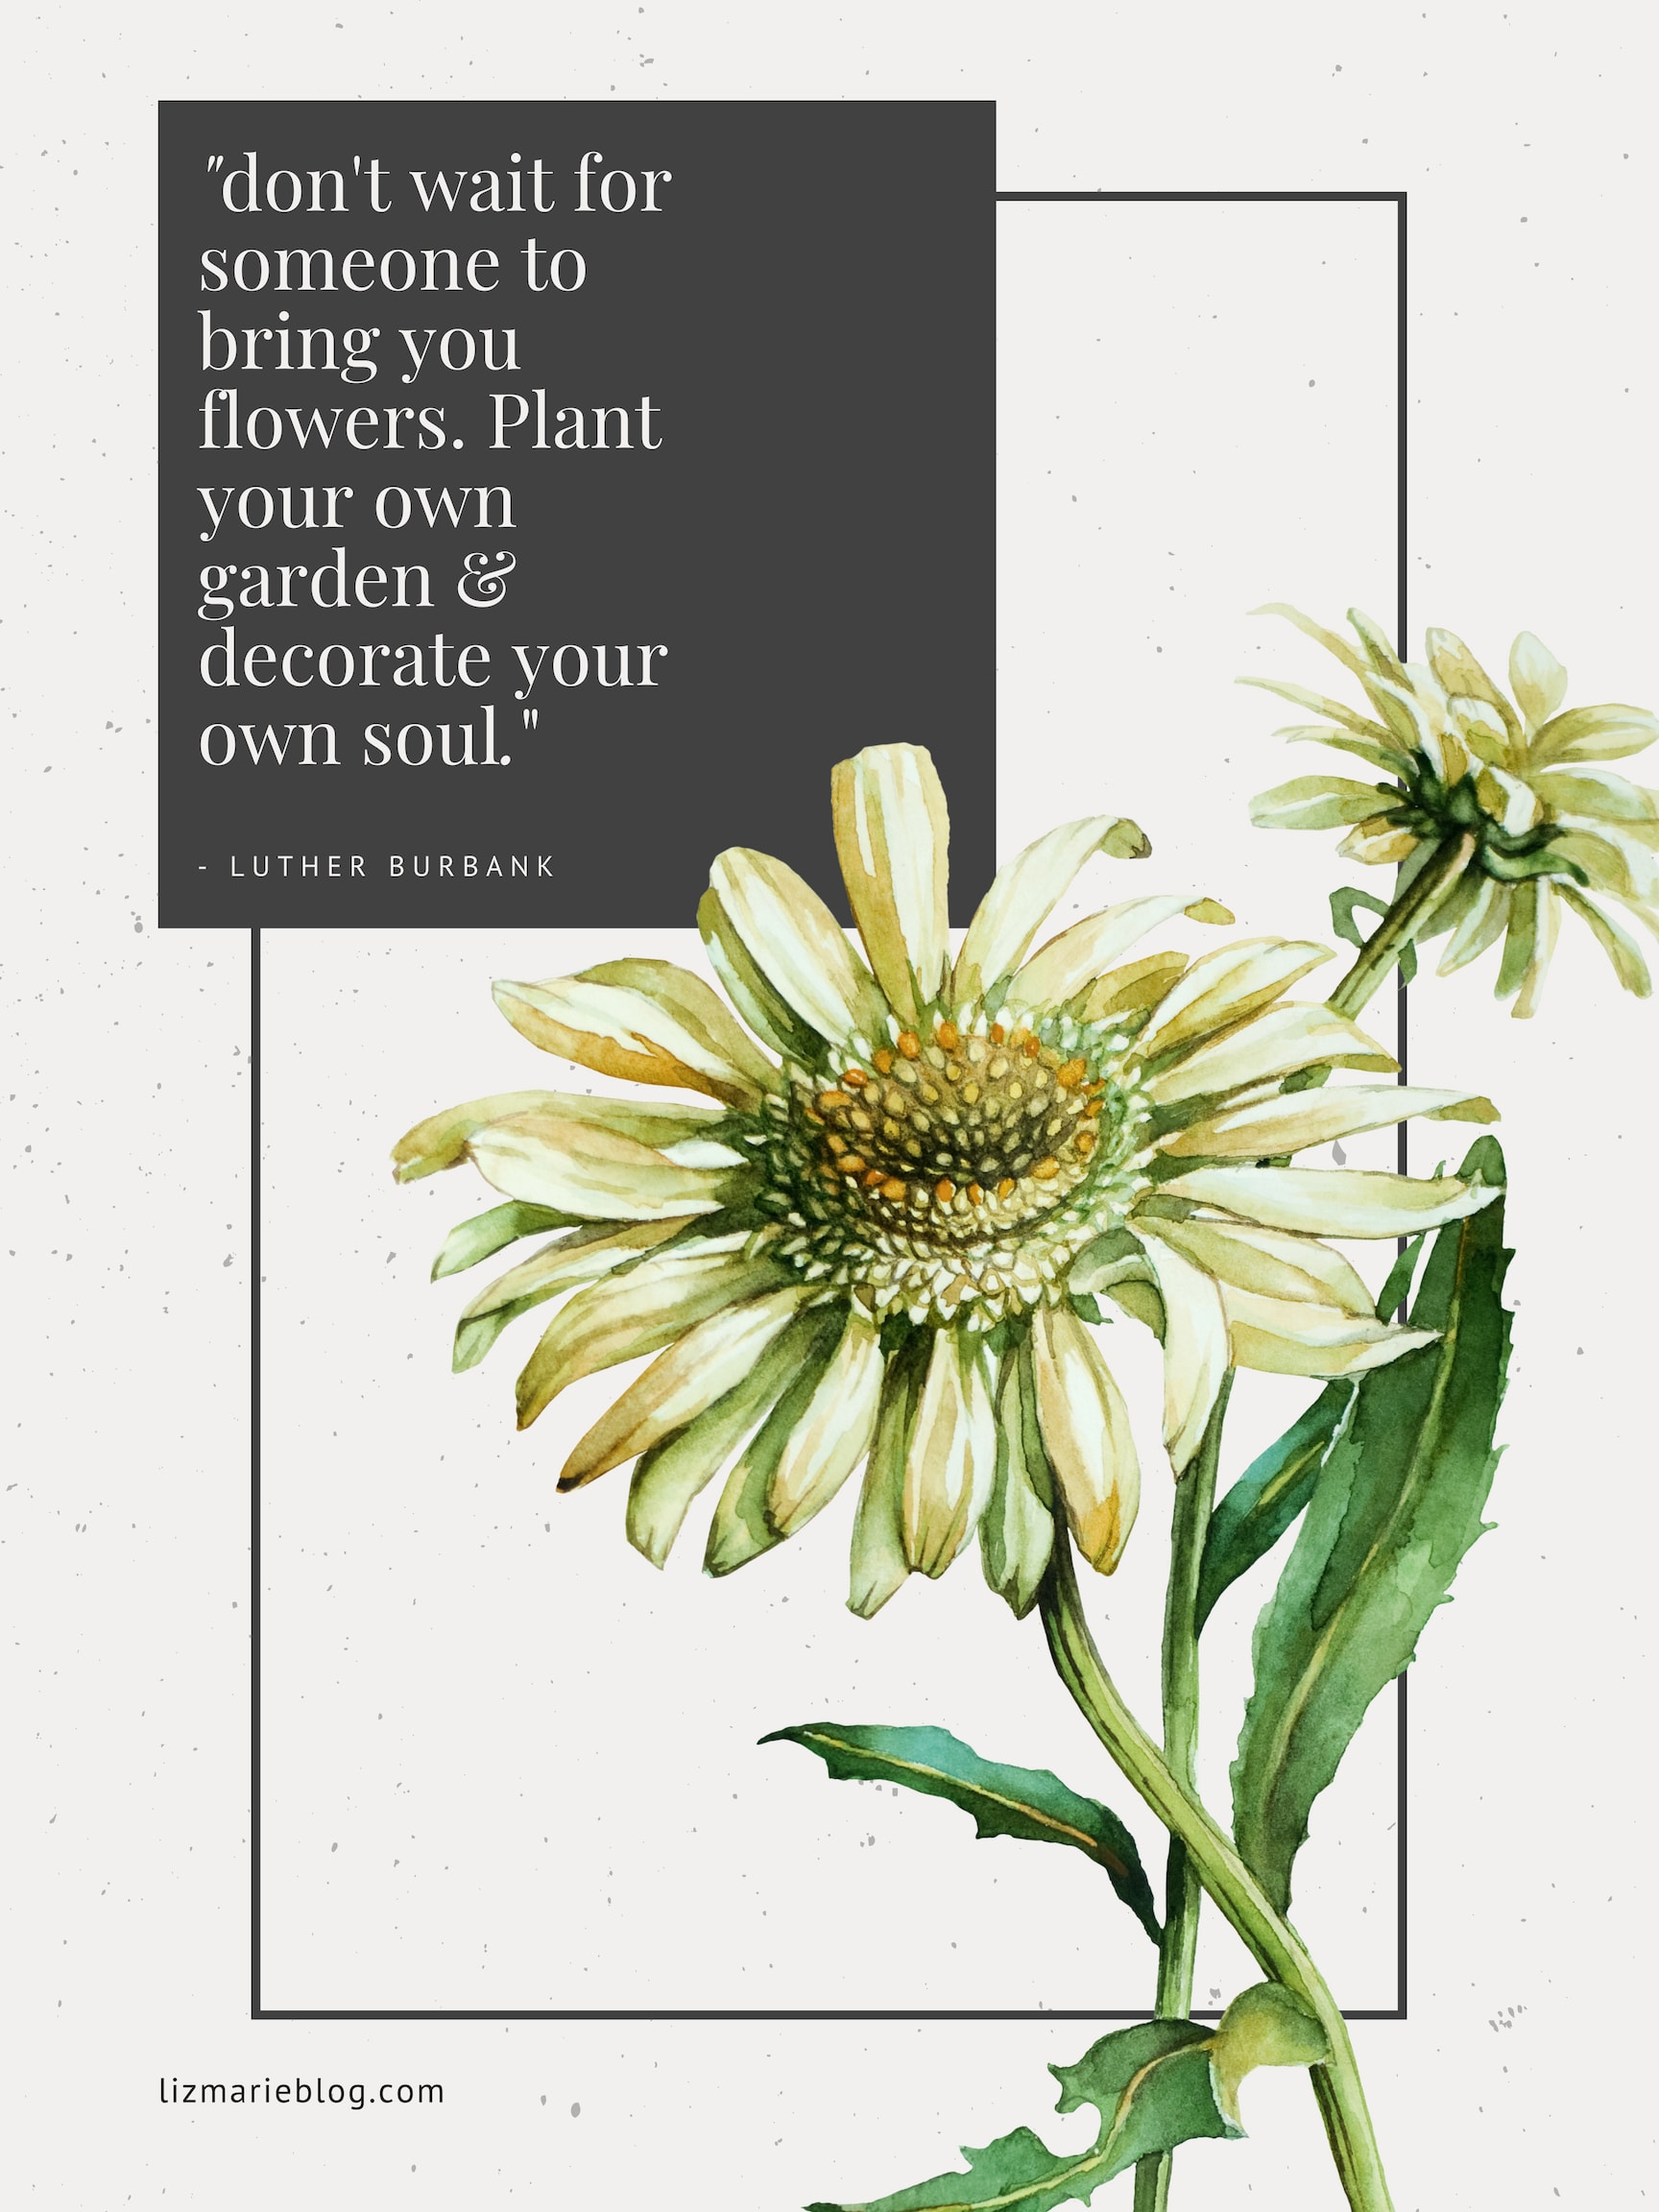 don't wait for someone to bring you flowers. Plant your own green & decorate your own soul. Inspirational quote by Luther Burbank